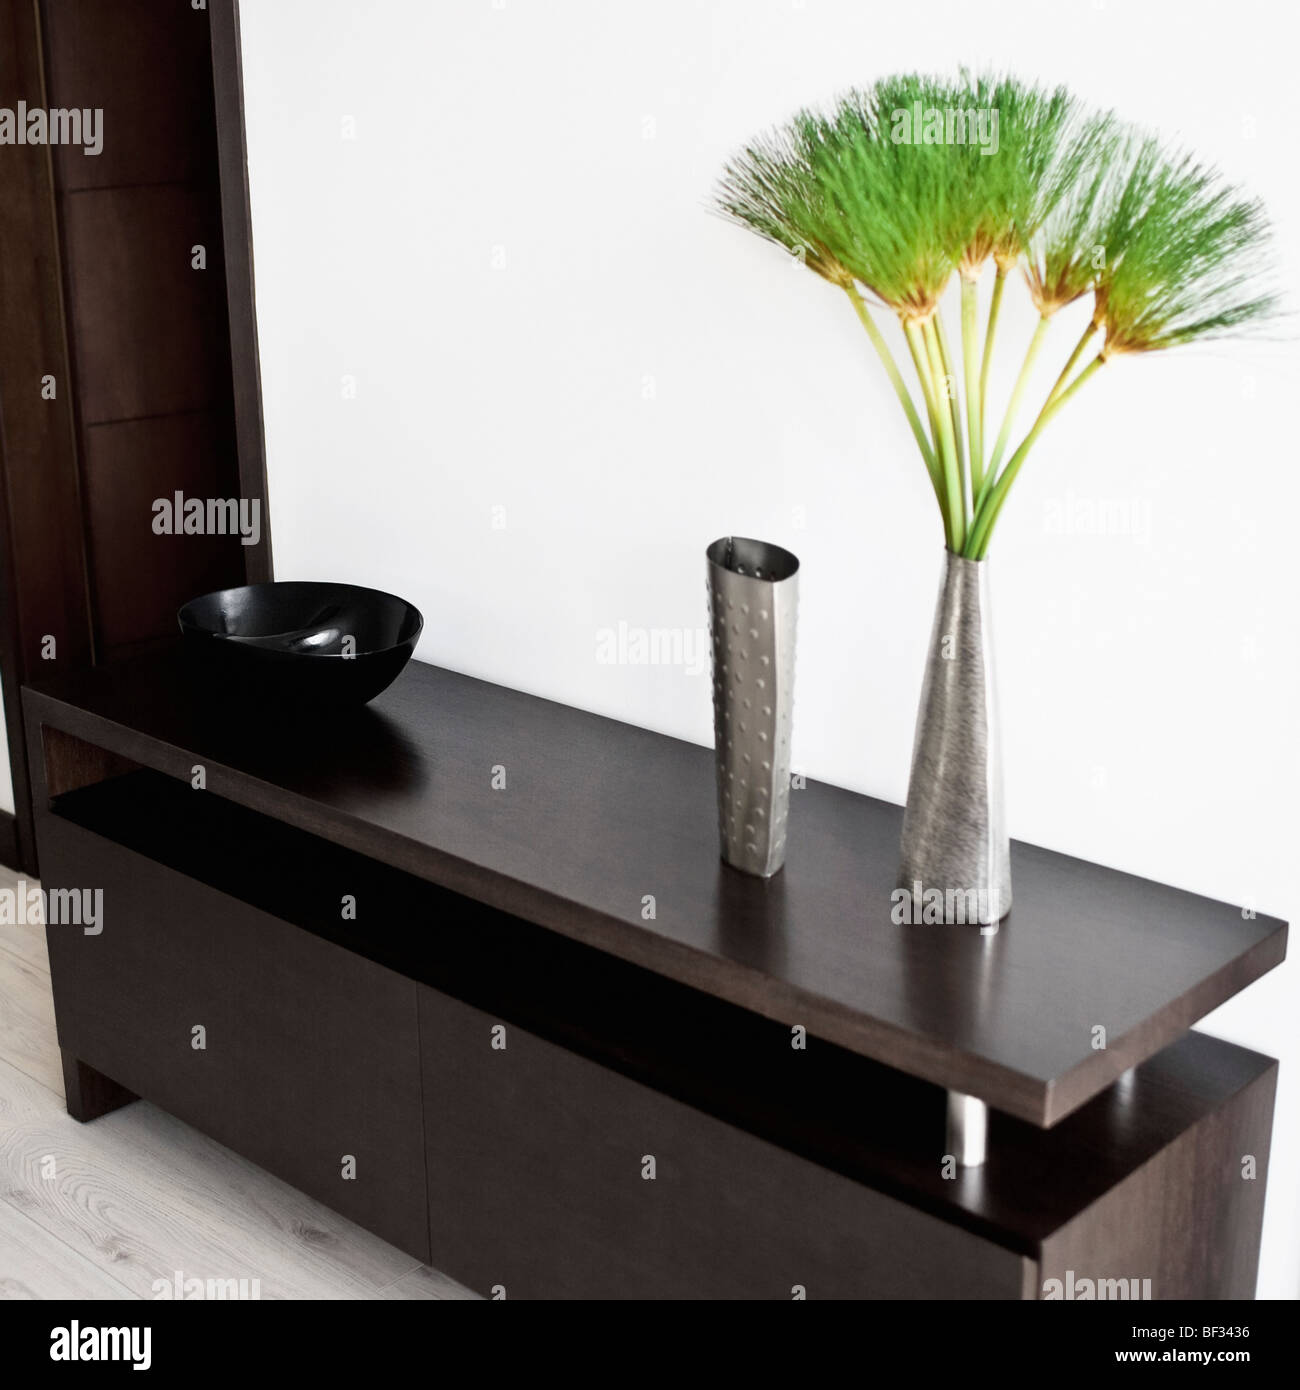 Showpieces on a sideboard Stock Photo